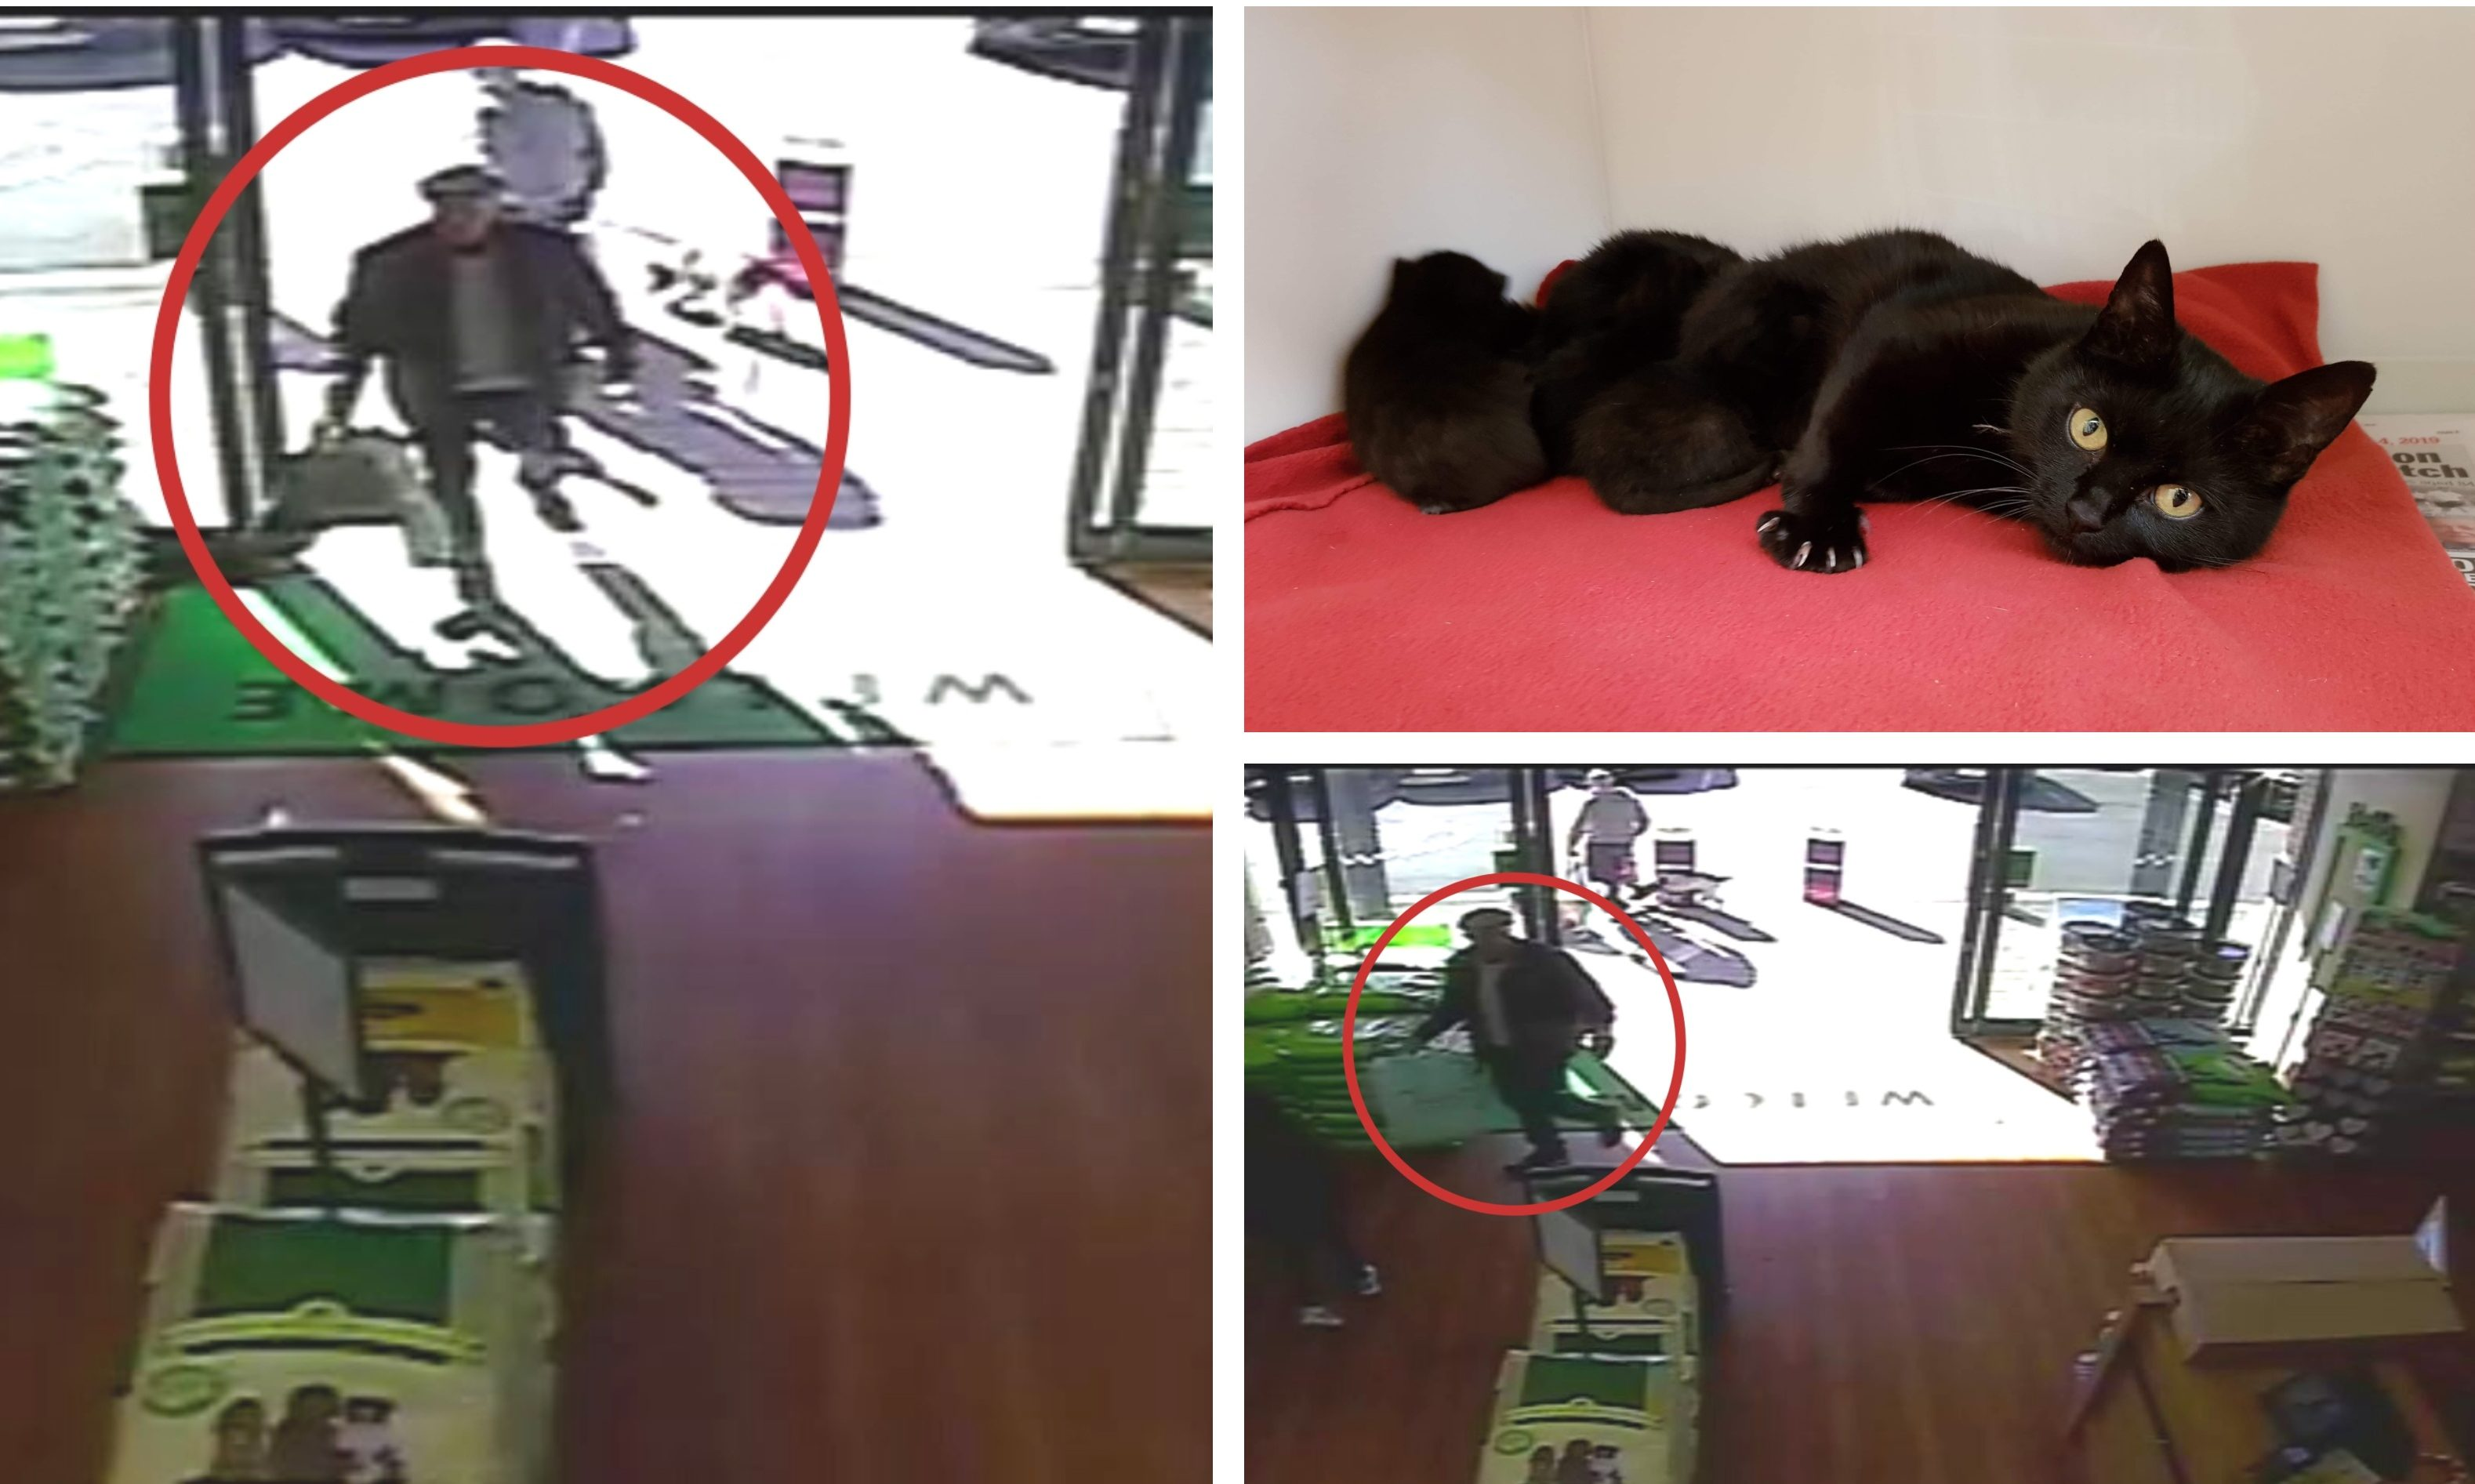 The man was filmed abandoning the cat and her kittens at Pets at Home in Dunfermline.